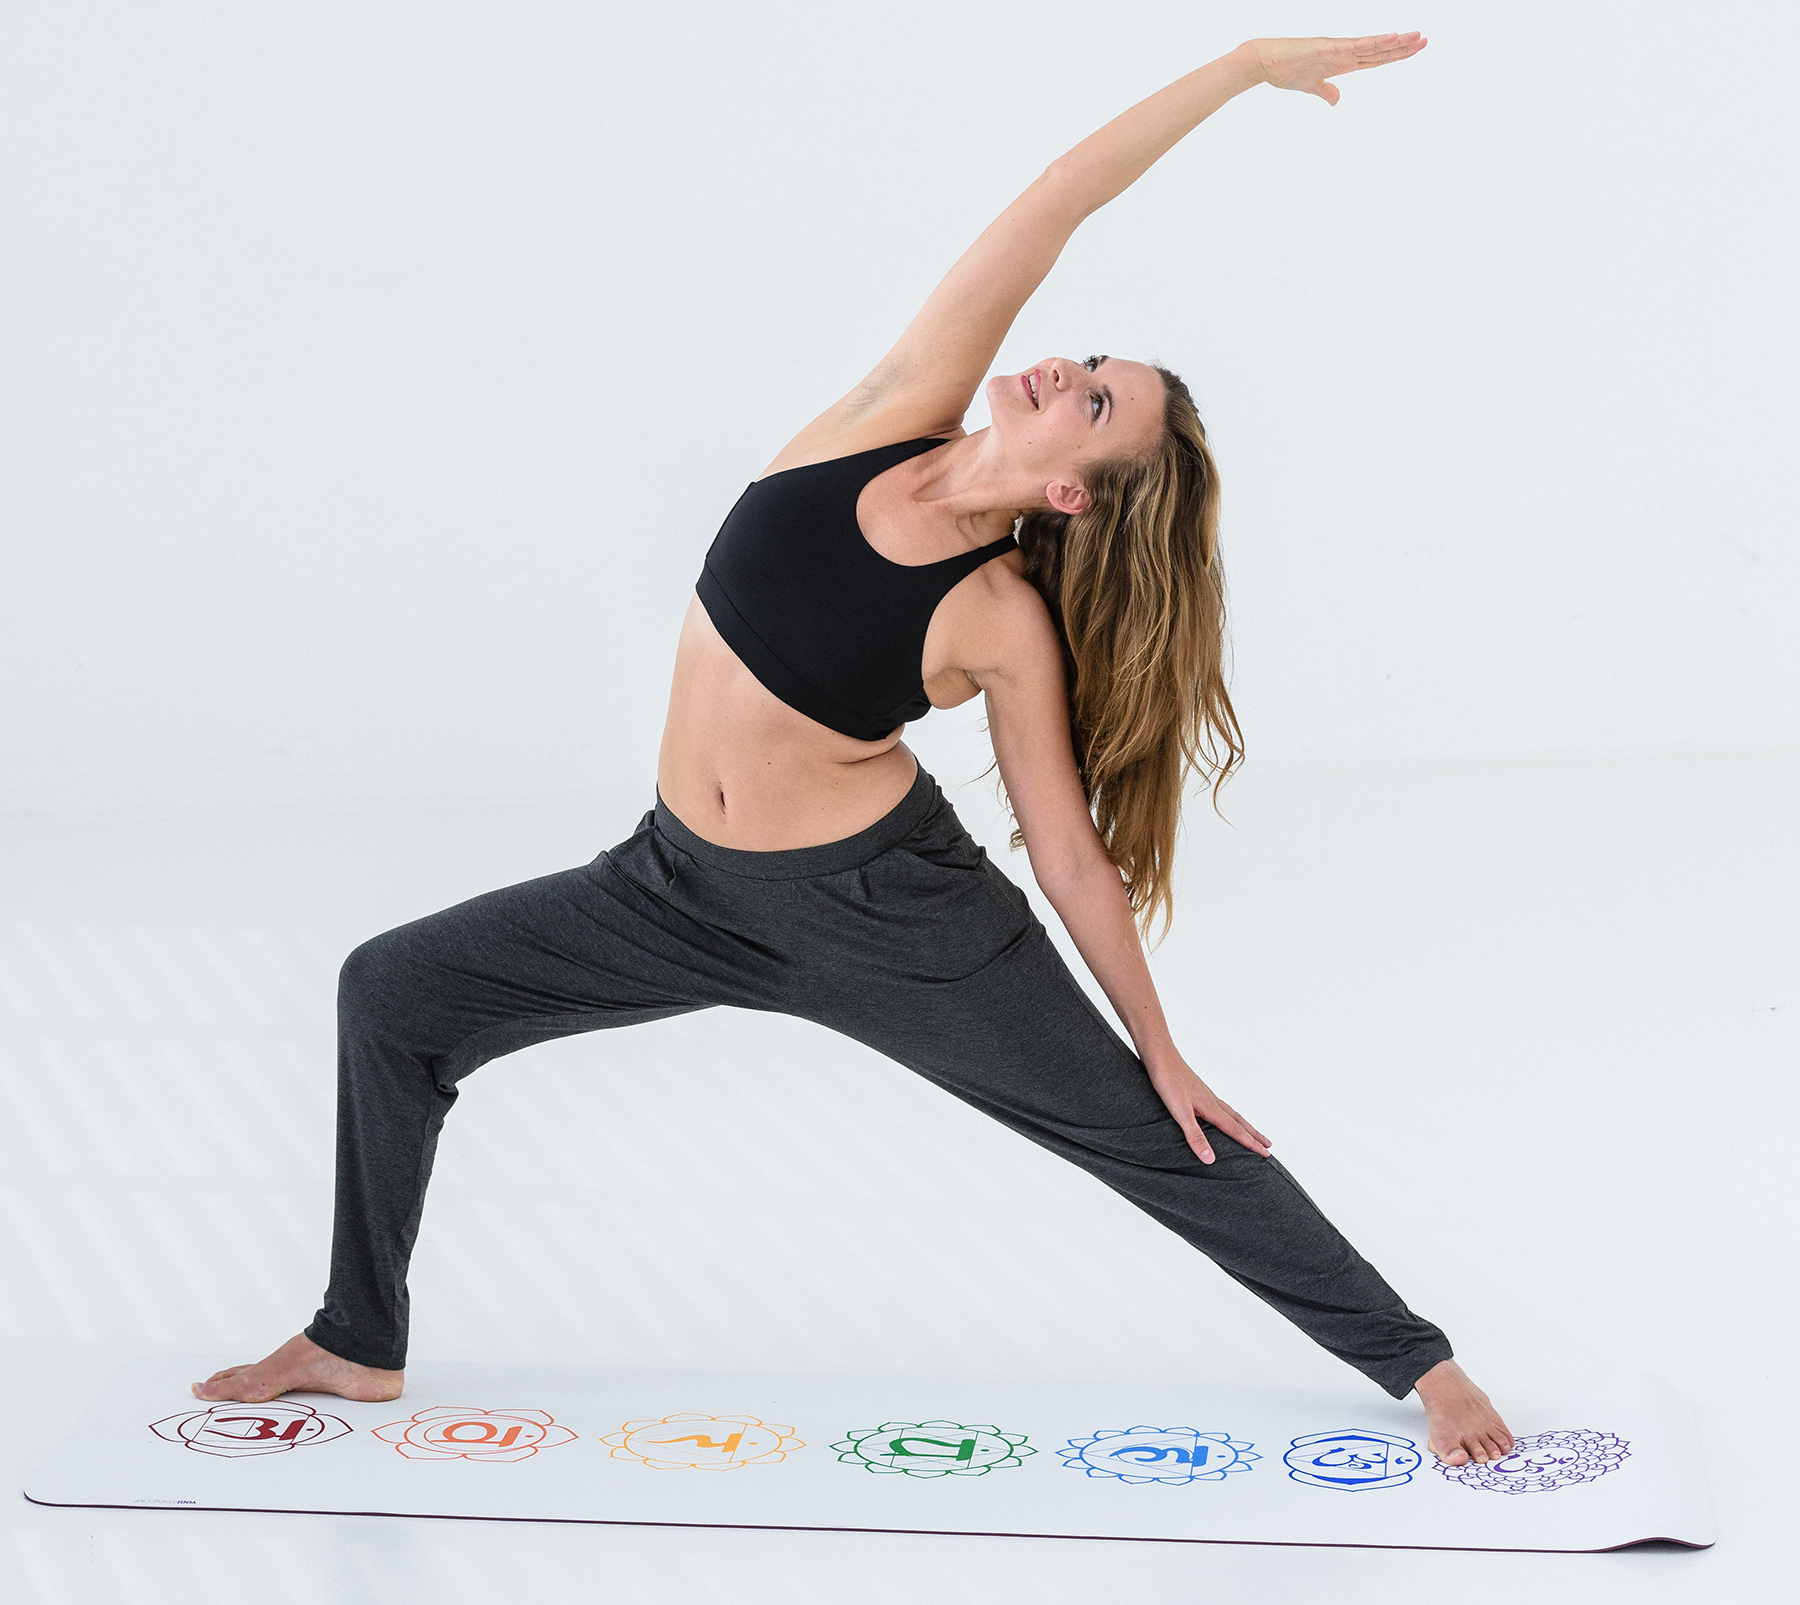 Yoga mat 'Pro art collection'